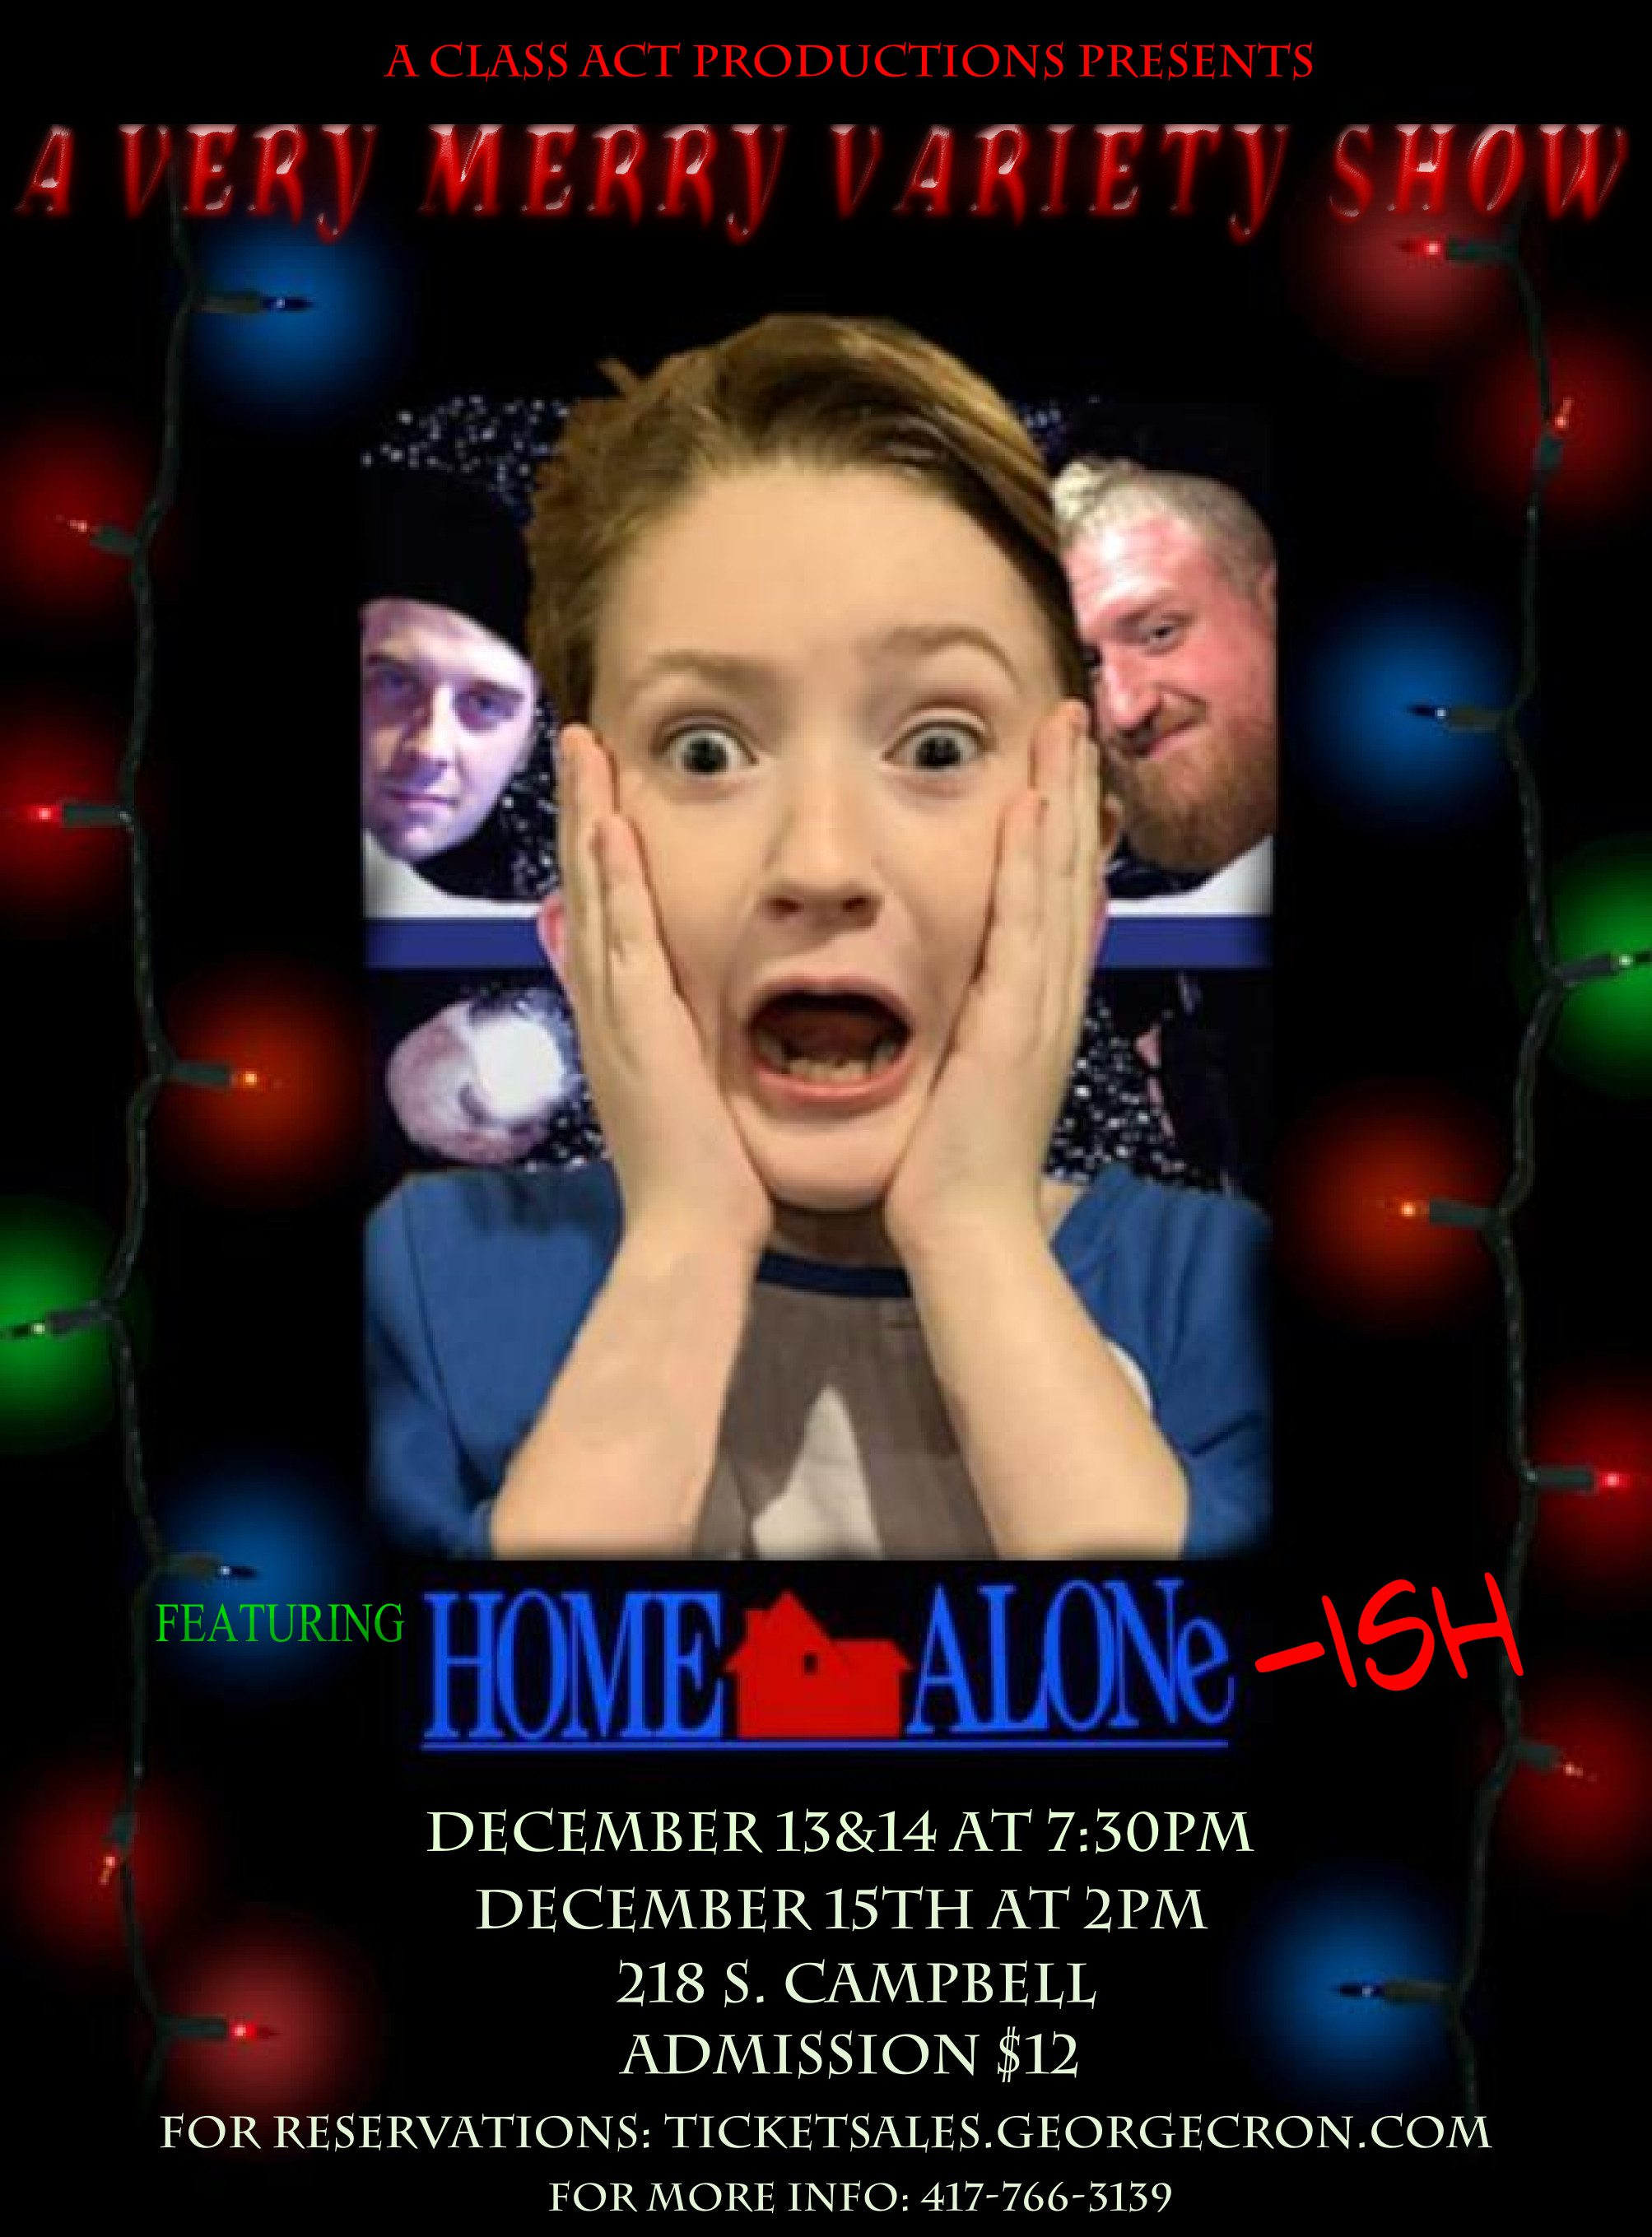 Home Alone inspired Christmas show in Springfield, MO